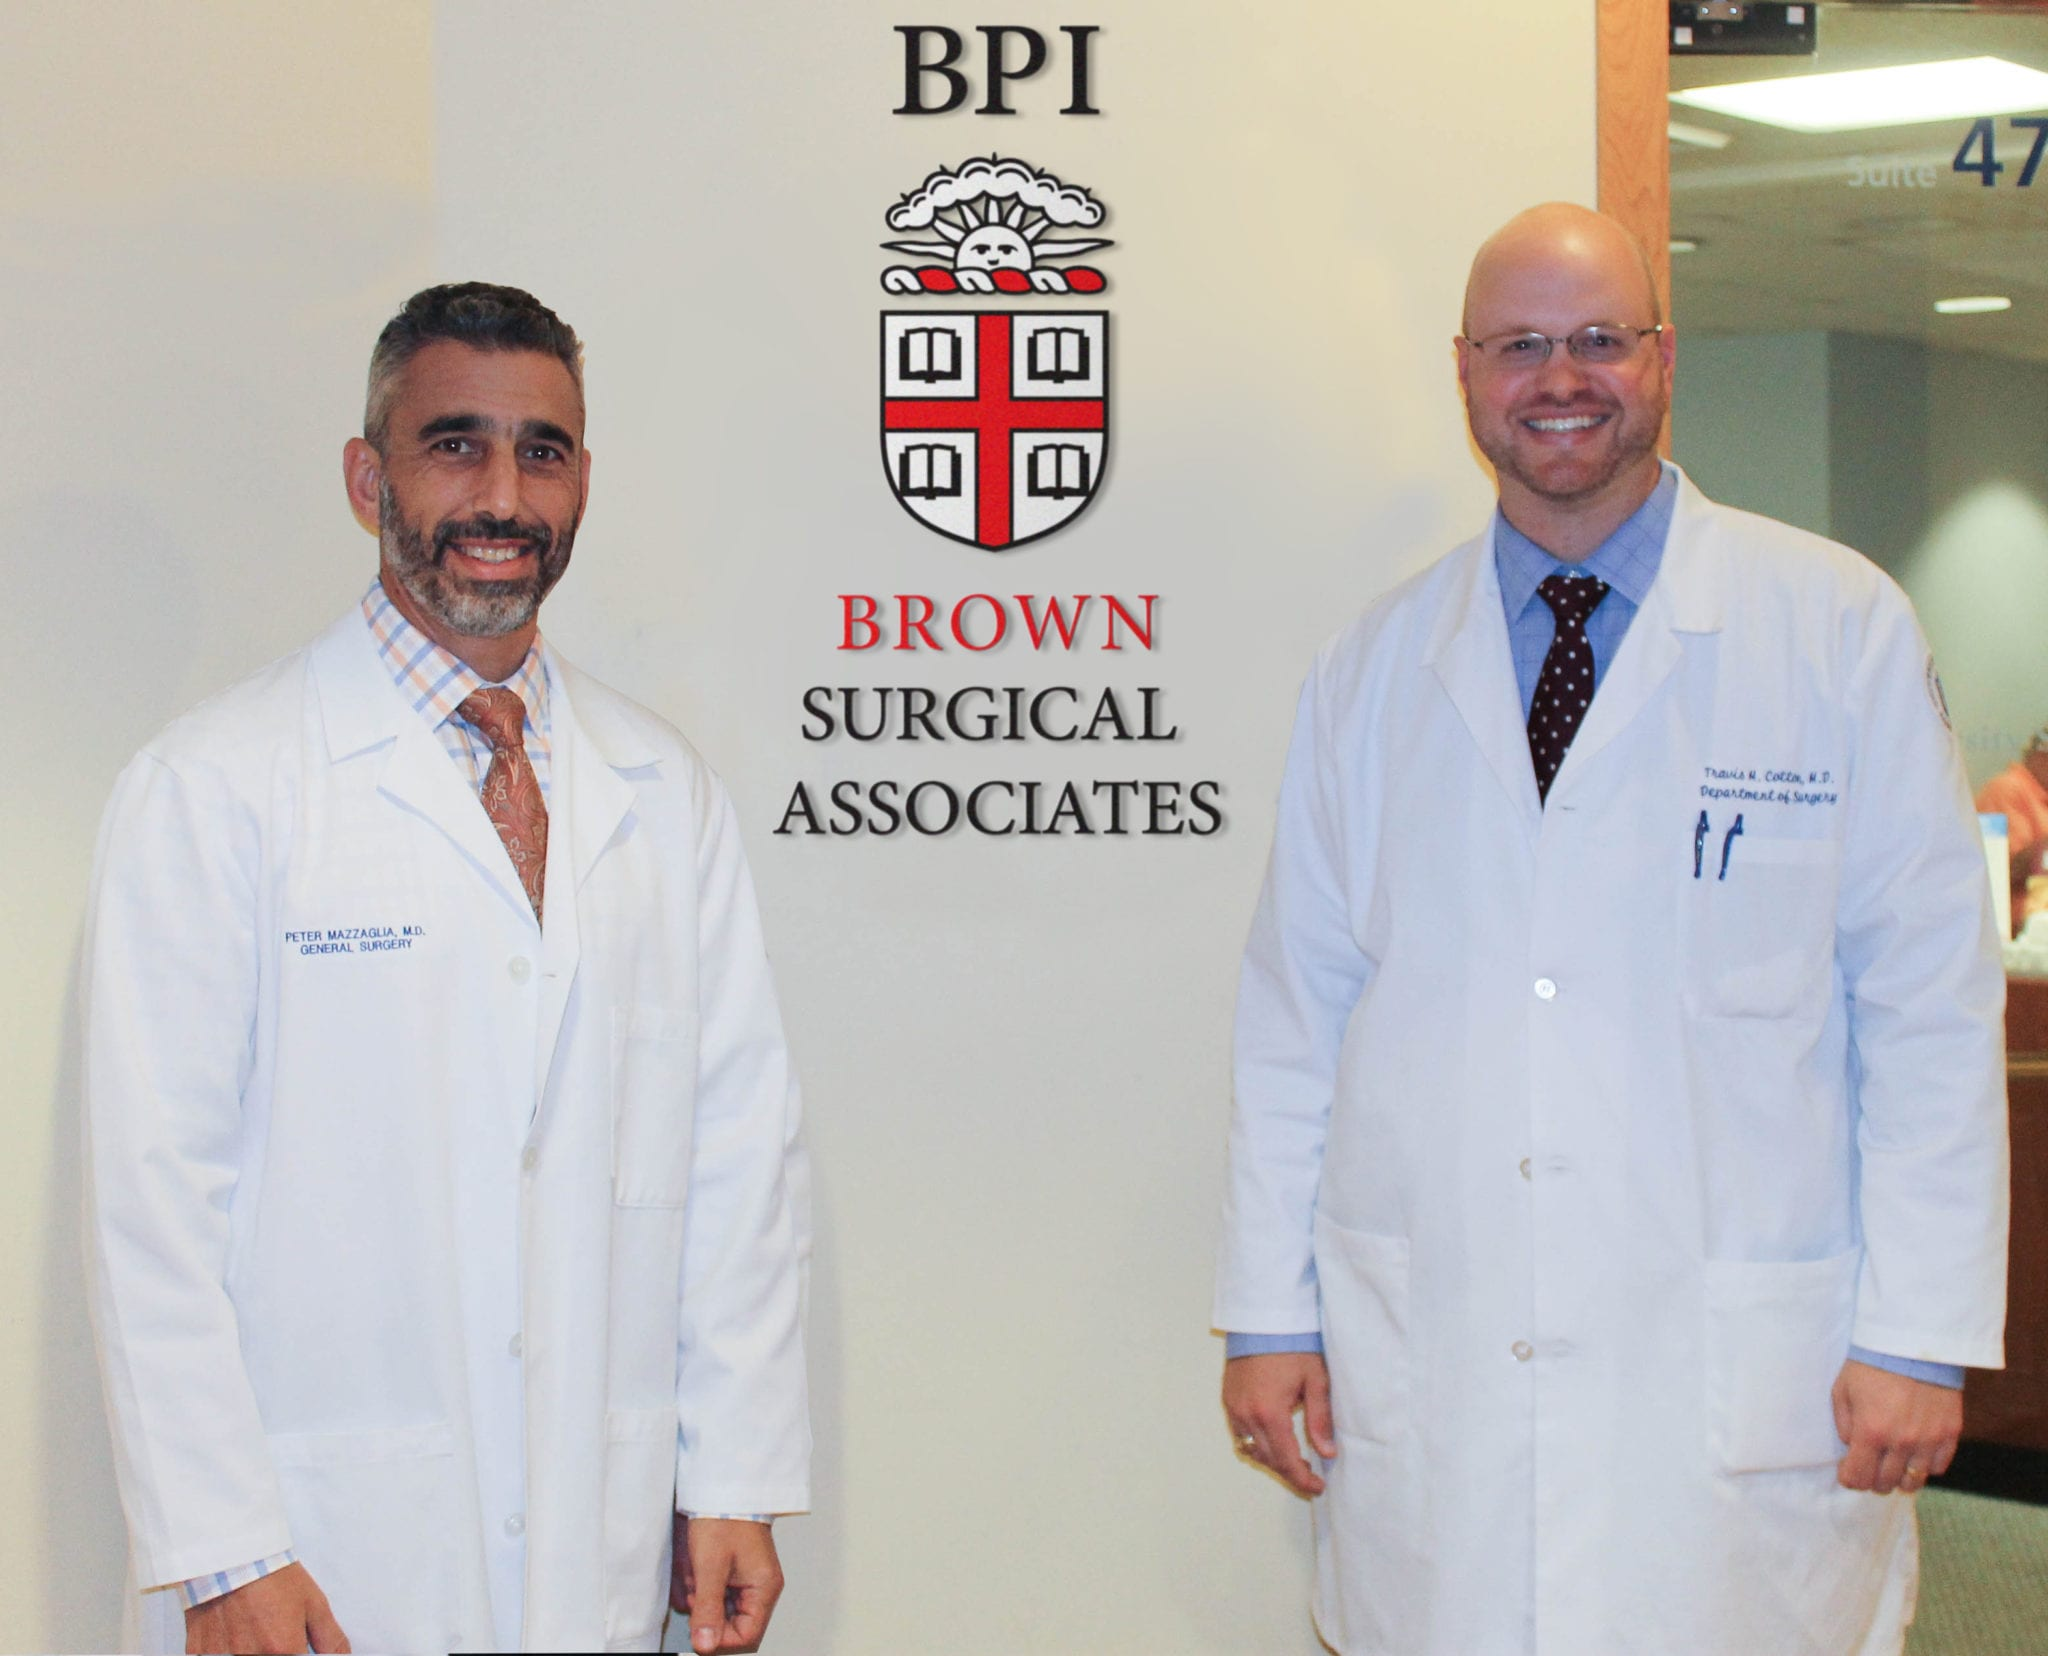 Endocrine Surgery Rhode Island - Brown Surgical Associates - Endocrine Surgeons near me - thyroidectomy rhode island - hyperthyroidism treatment rhode island - thyroid cancer treatment rhode island - goiter treatment - Endocrine Surgeons rhode island